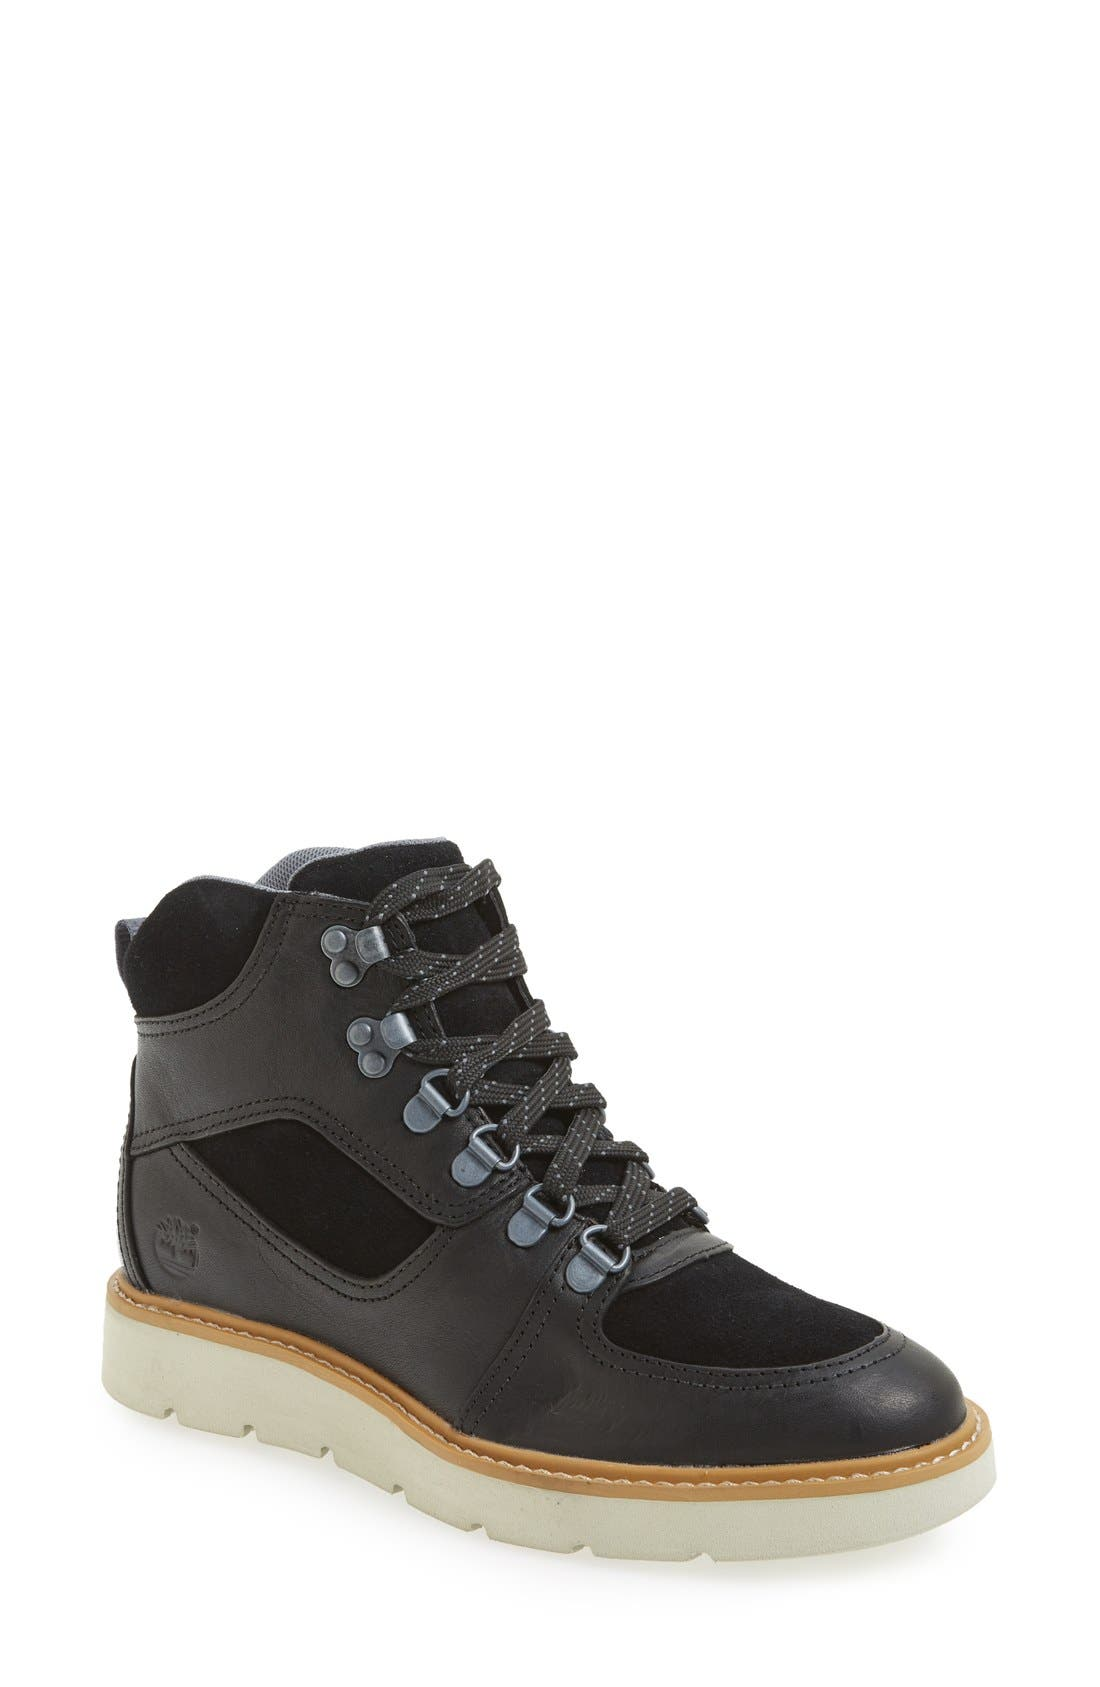 'Kenniston' Lace-Up Boot, Main, color, 001